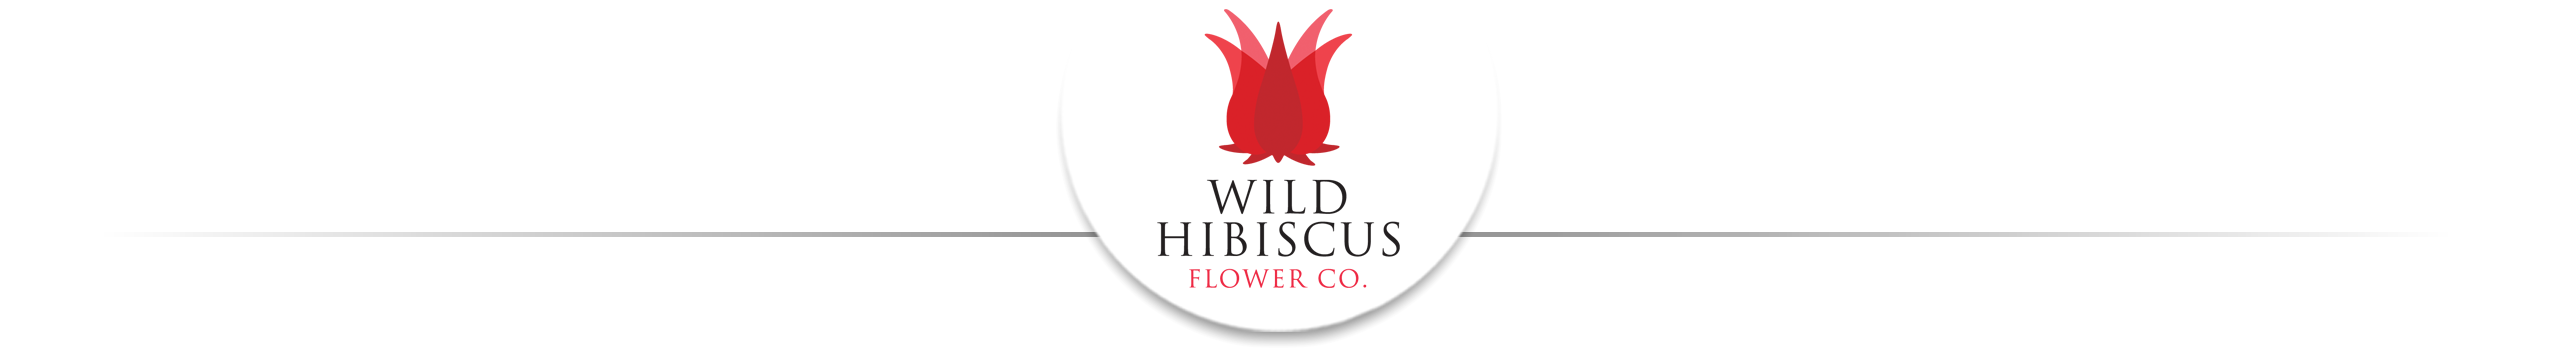 Wild Hibiscus Flowers In Syrup Flower Extracts Blure Heart Tee